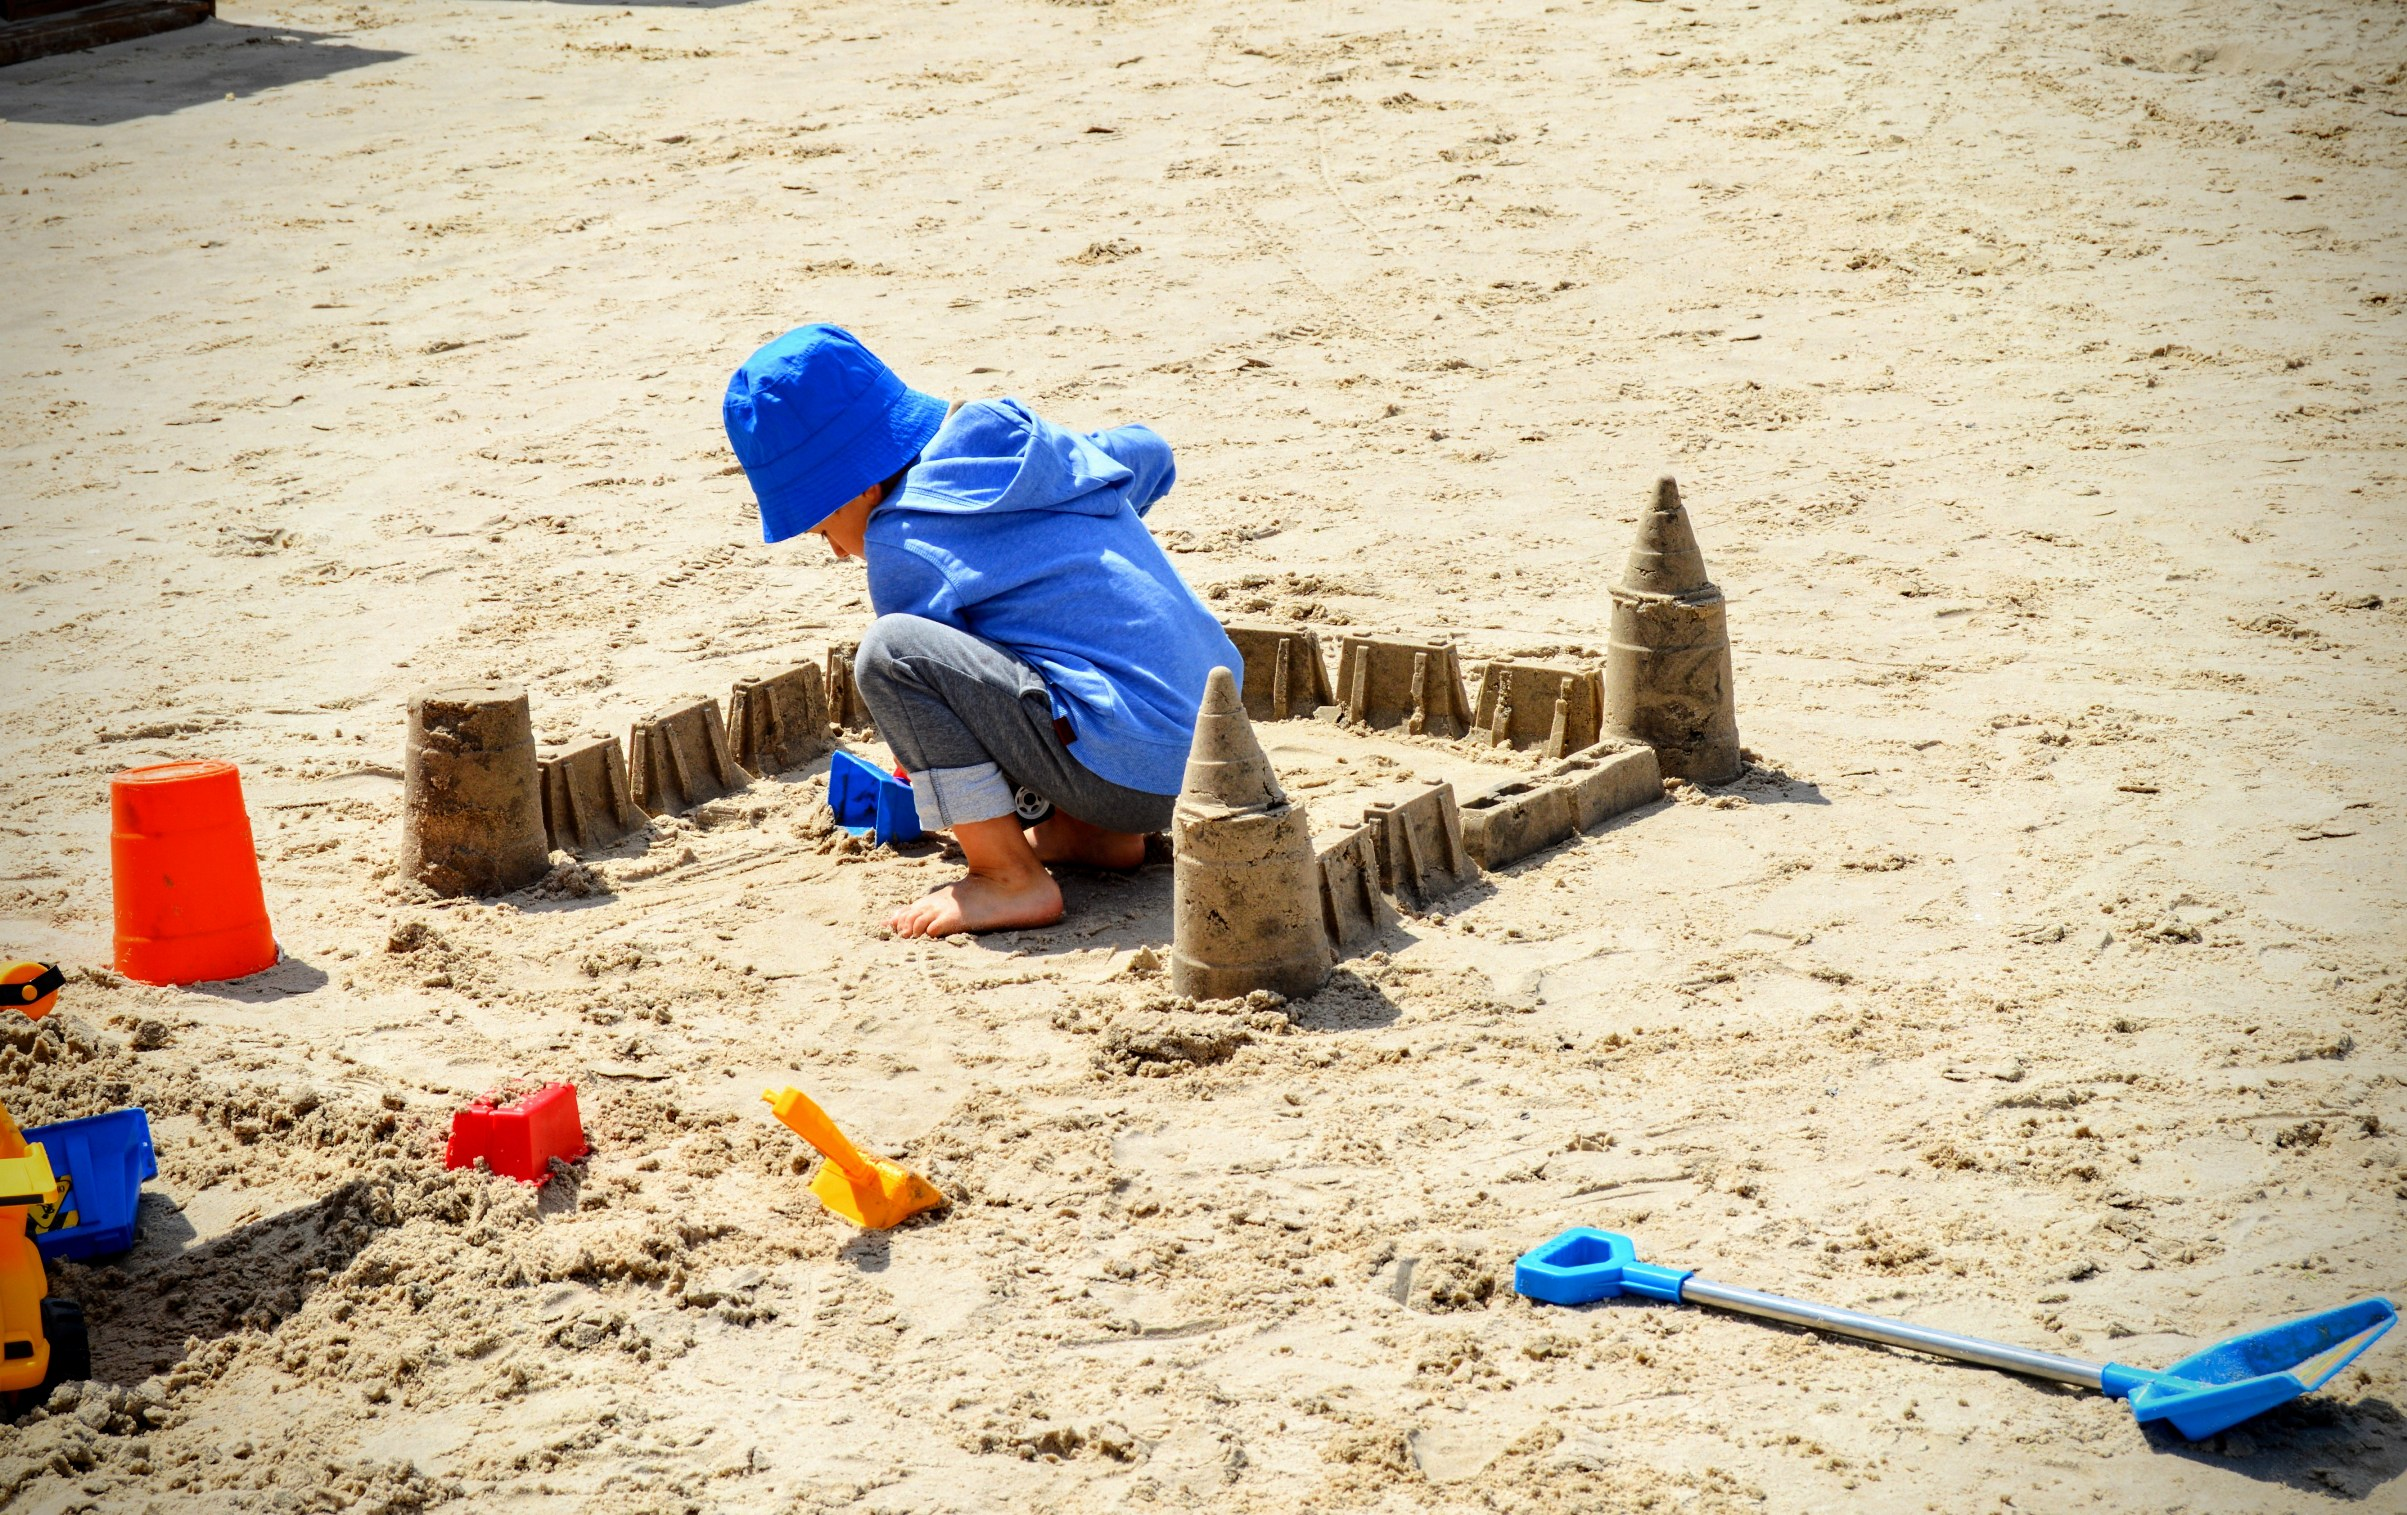 A child plays with sand, sculpting a sand castle on a sandy beach photo